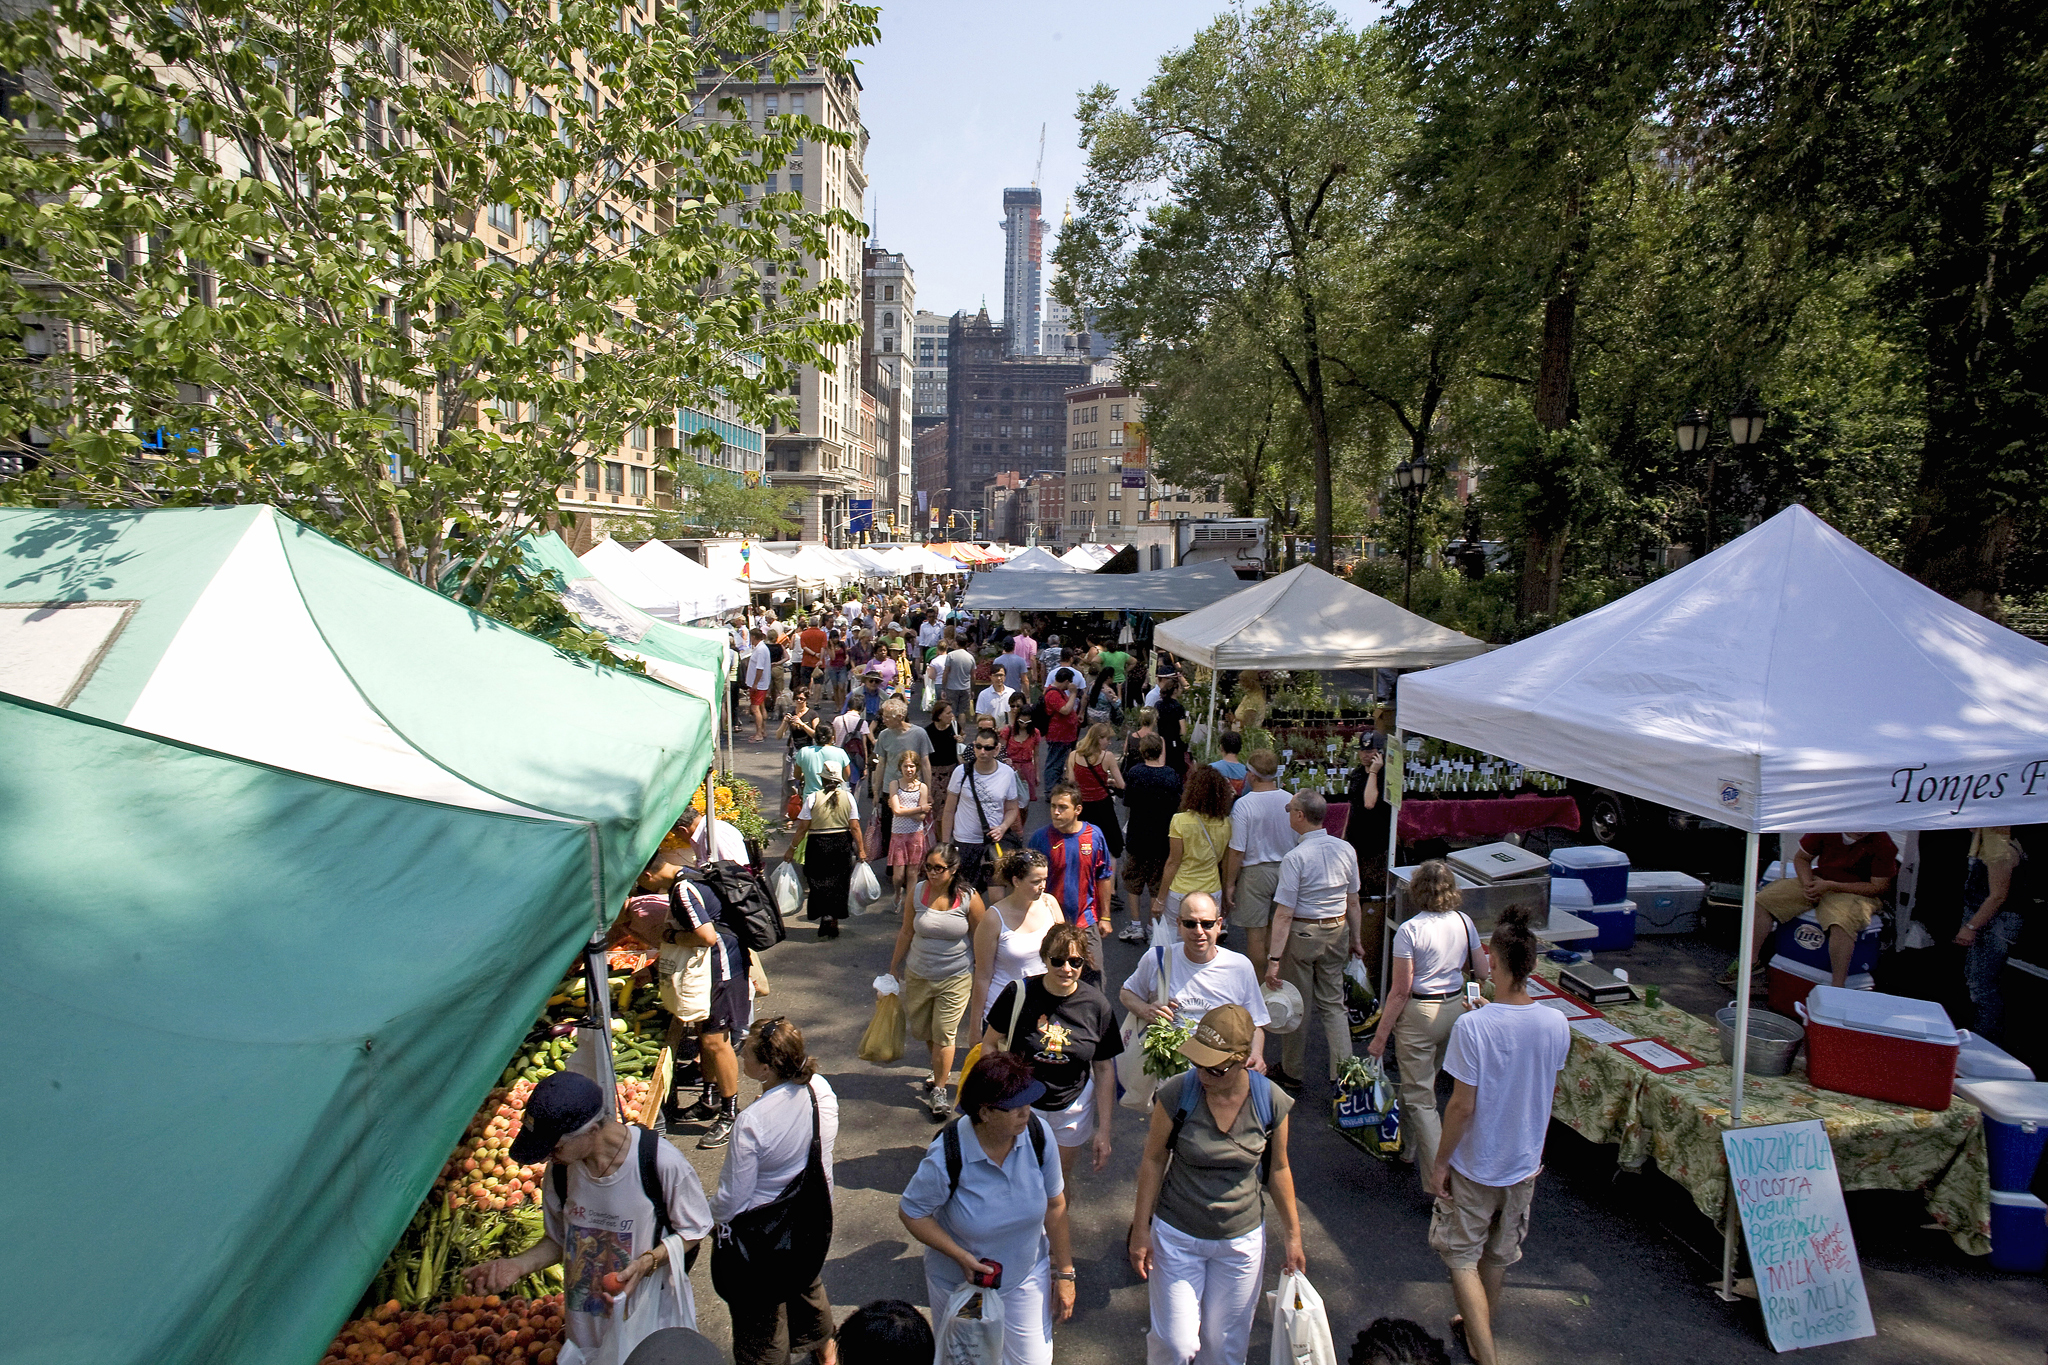 Fill up on free samples at the Union Square Greenmarket